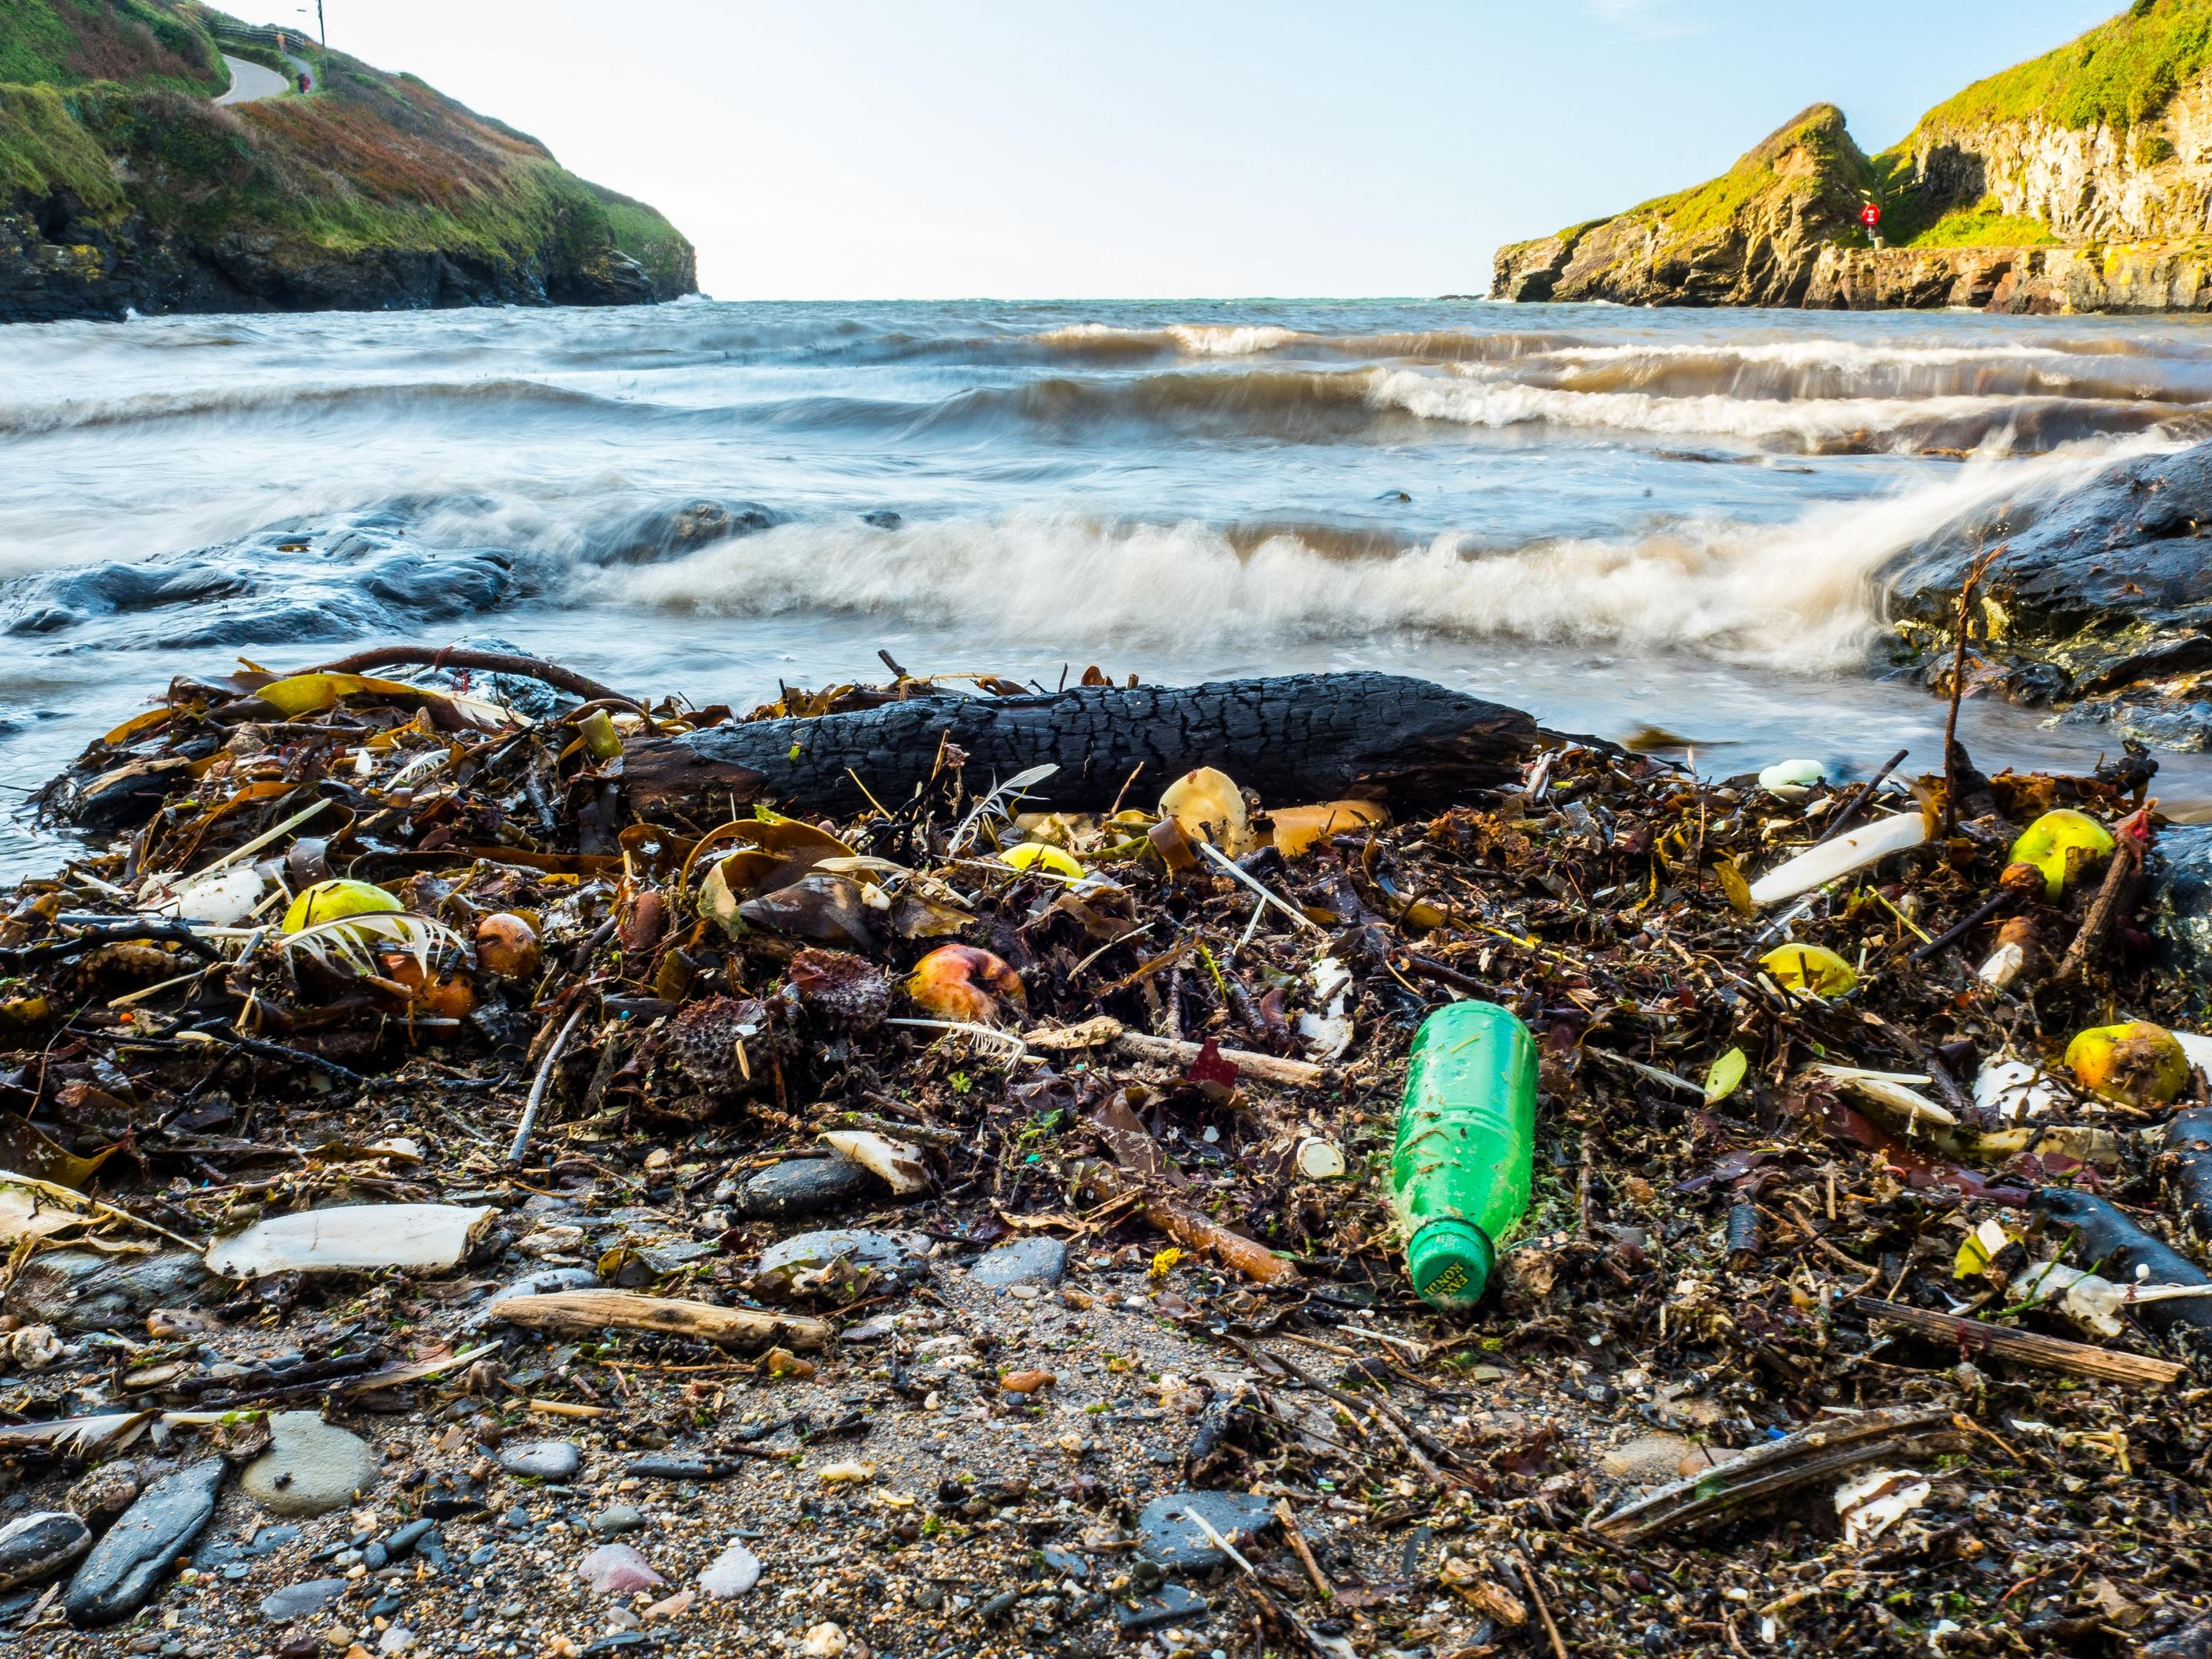 Plastics are killing marine life (Nigel_Wallace/Getty Images)